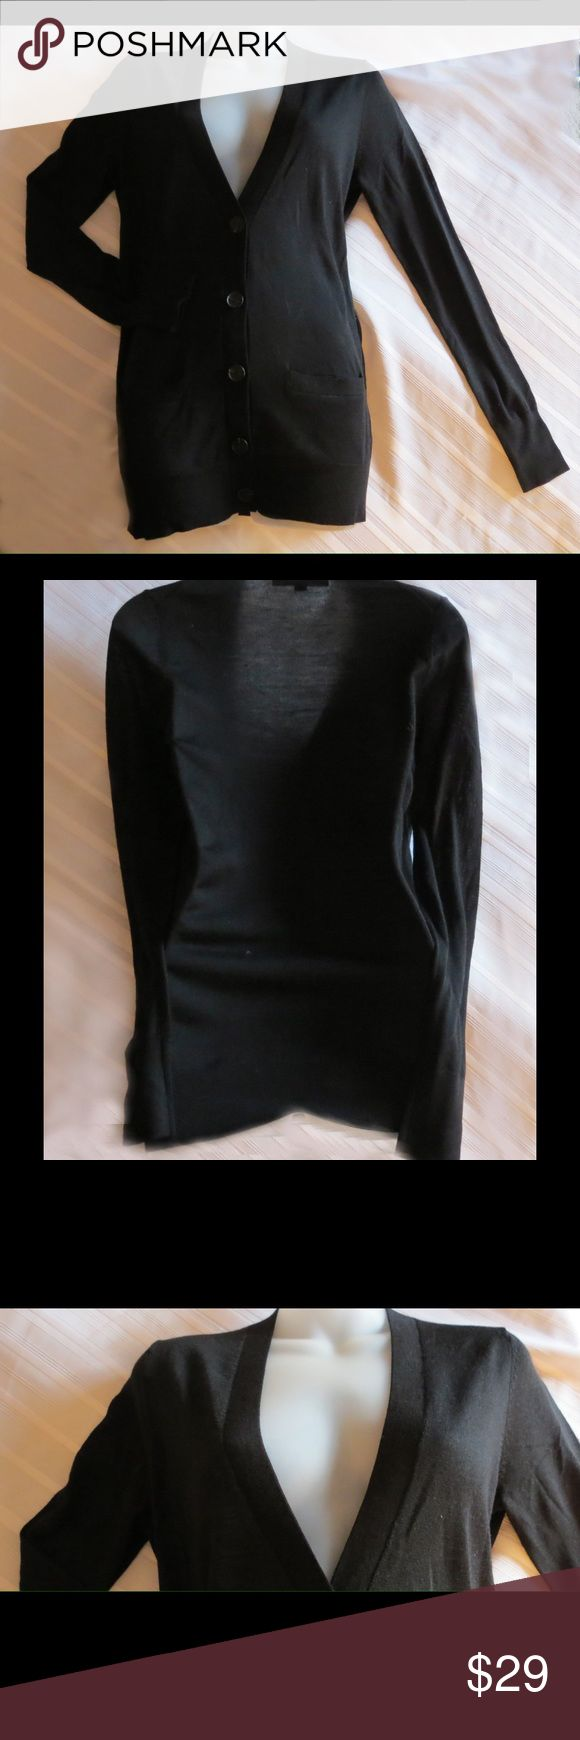 """Ann Taylor Loft Black Lightweight Cardigan Size S Ann Taylor Loft Black Lightweight Cardigan Size S  Super cute with two pockets and very lightweight and comfy.  Approx measurements  Sleeves  """"25 Chest  40""""  Length """"26  Excellent gently used condition. Color:Black Nice Lightweight sweater jacket All of my items are Guaranteed 100% Genuine I do not sell FAKES of any kind   No Trades (W2011) LOFT Jackets & Coats"""